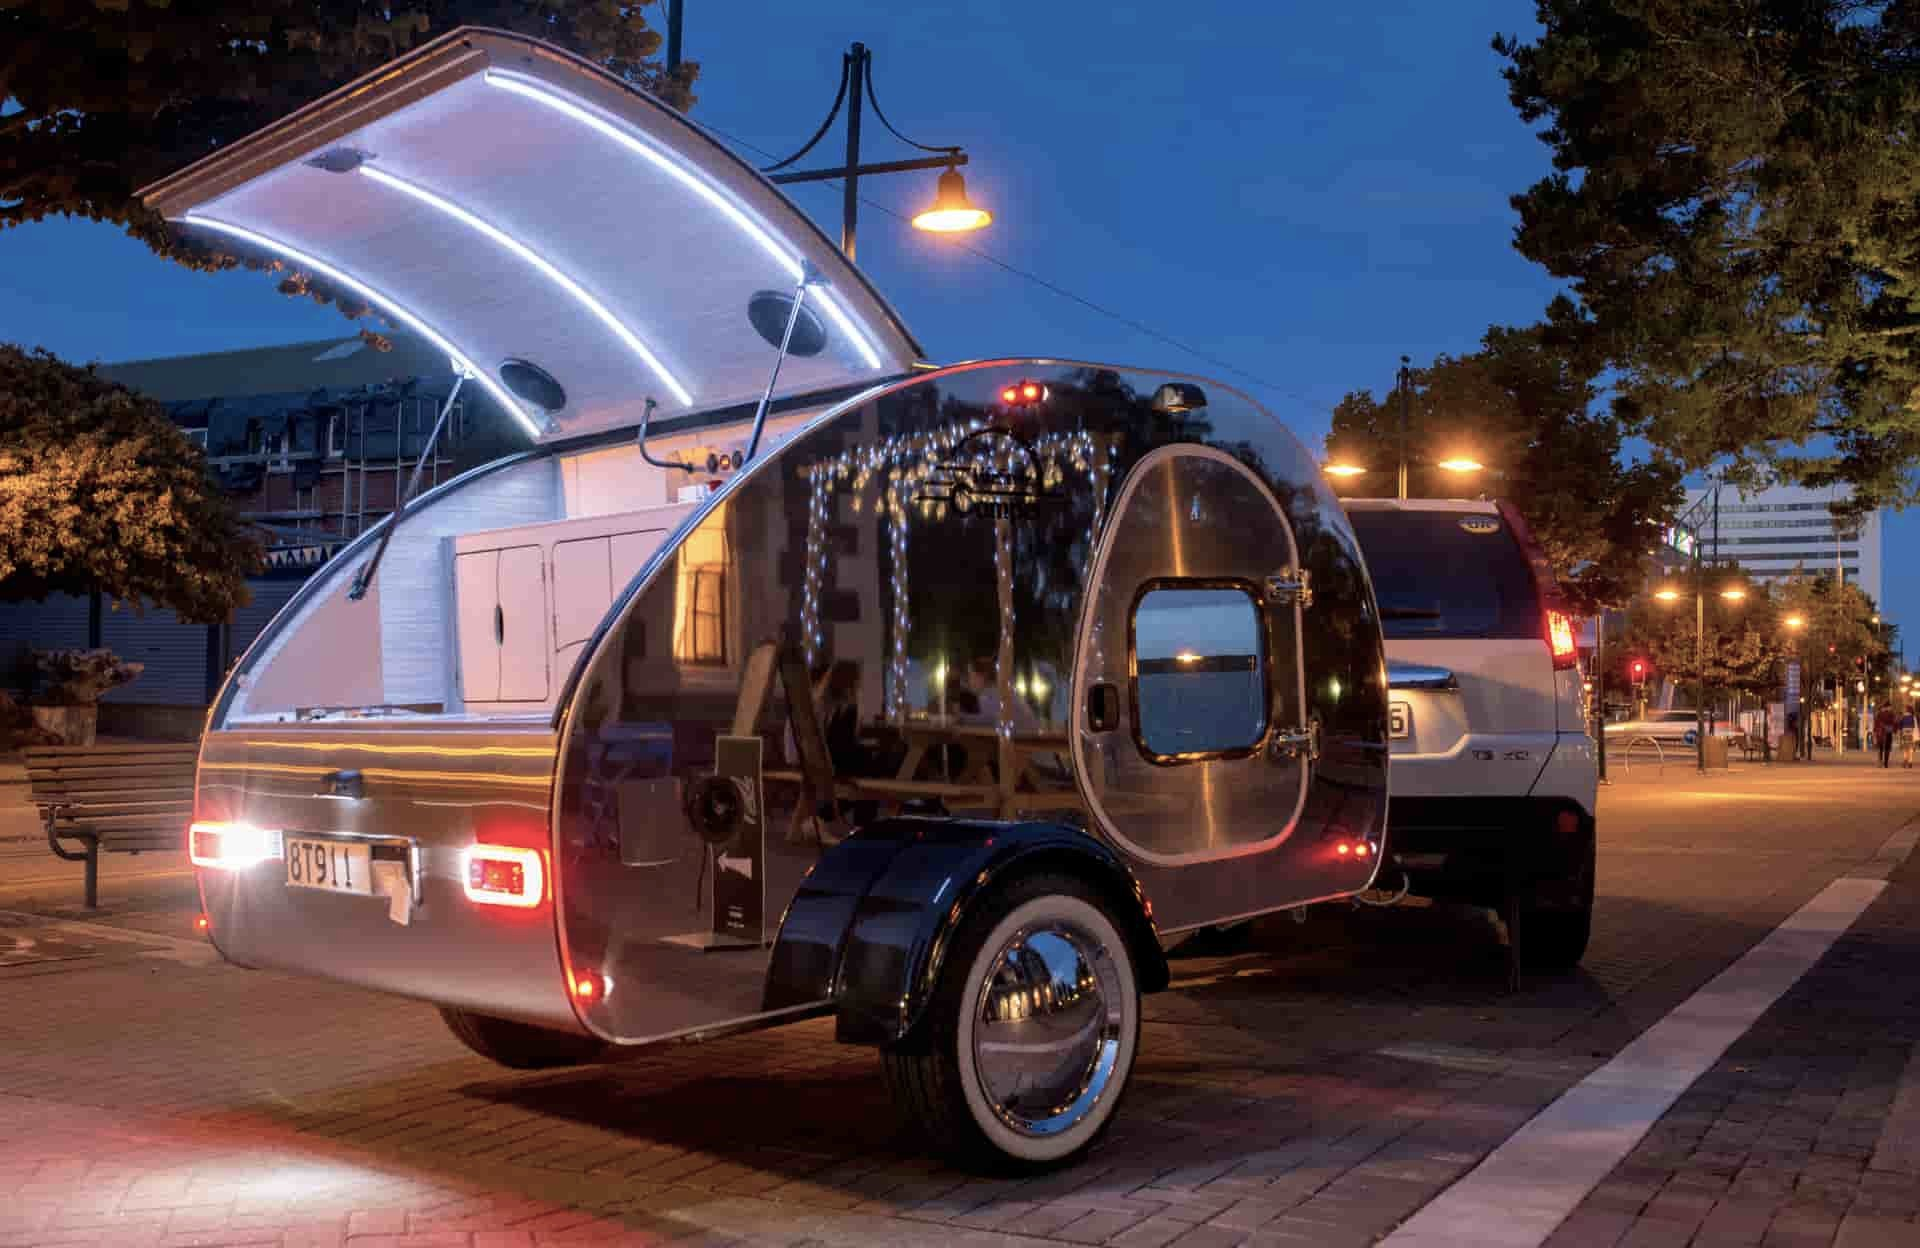 Lifestyle Camper Norge Mini campingvogn modell steeldrop